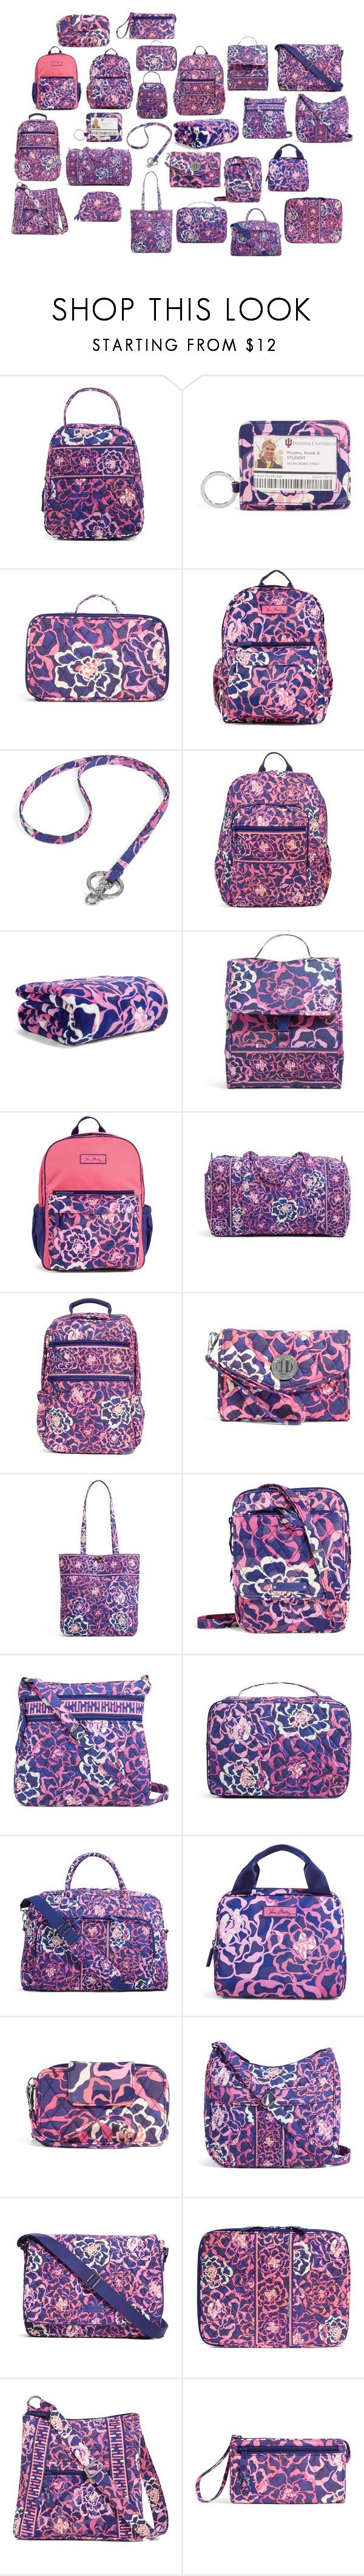 """Vera Bradley Katalina Pink"" by sup-16 on Polyvore featuring Vera Bradley"